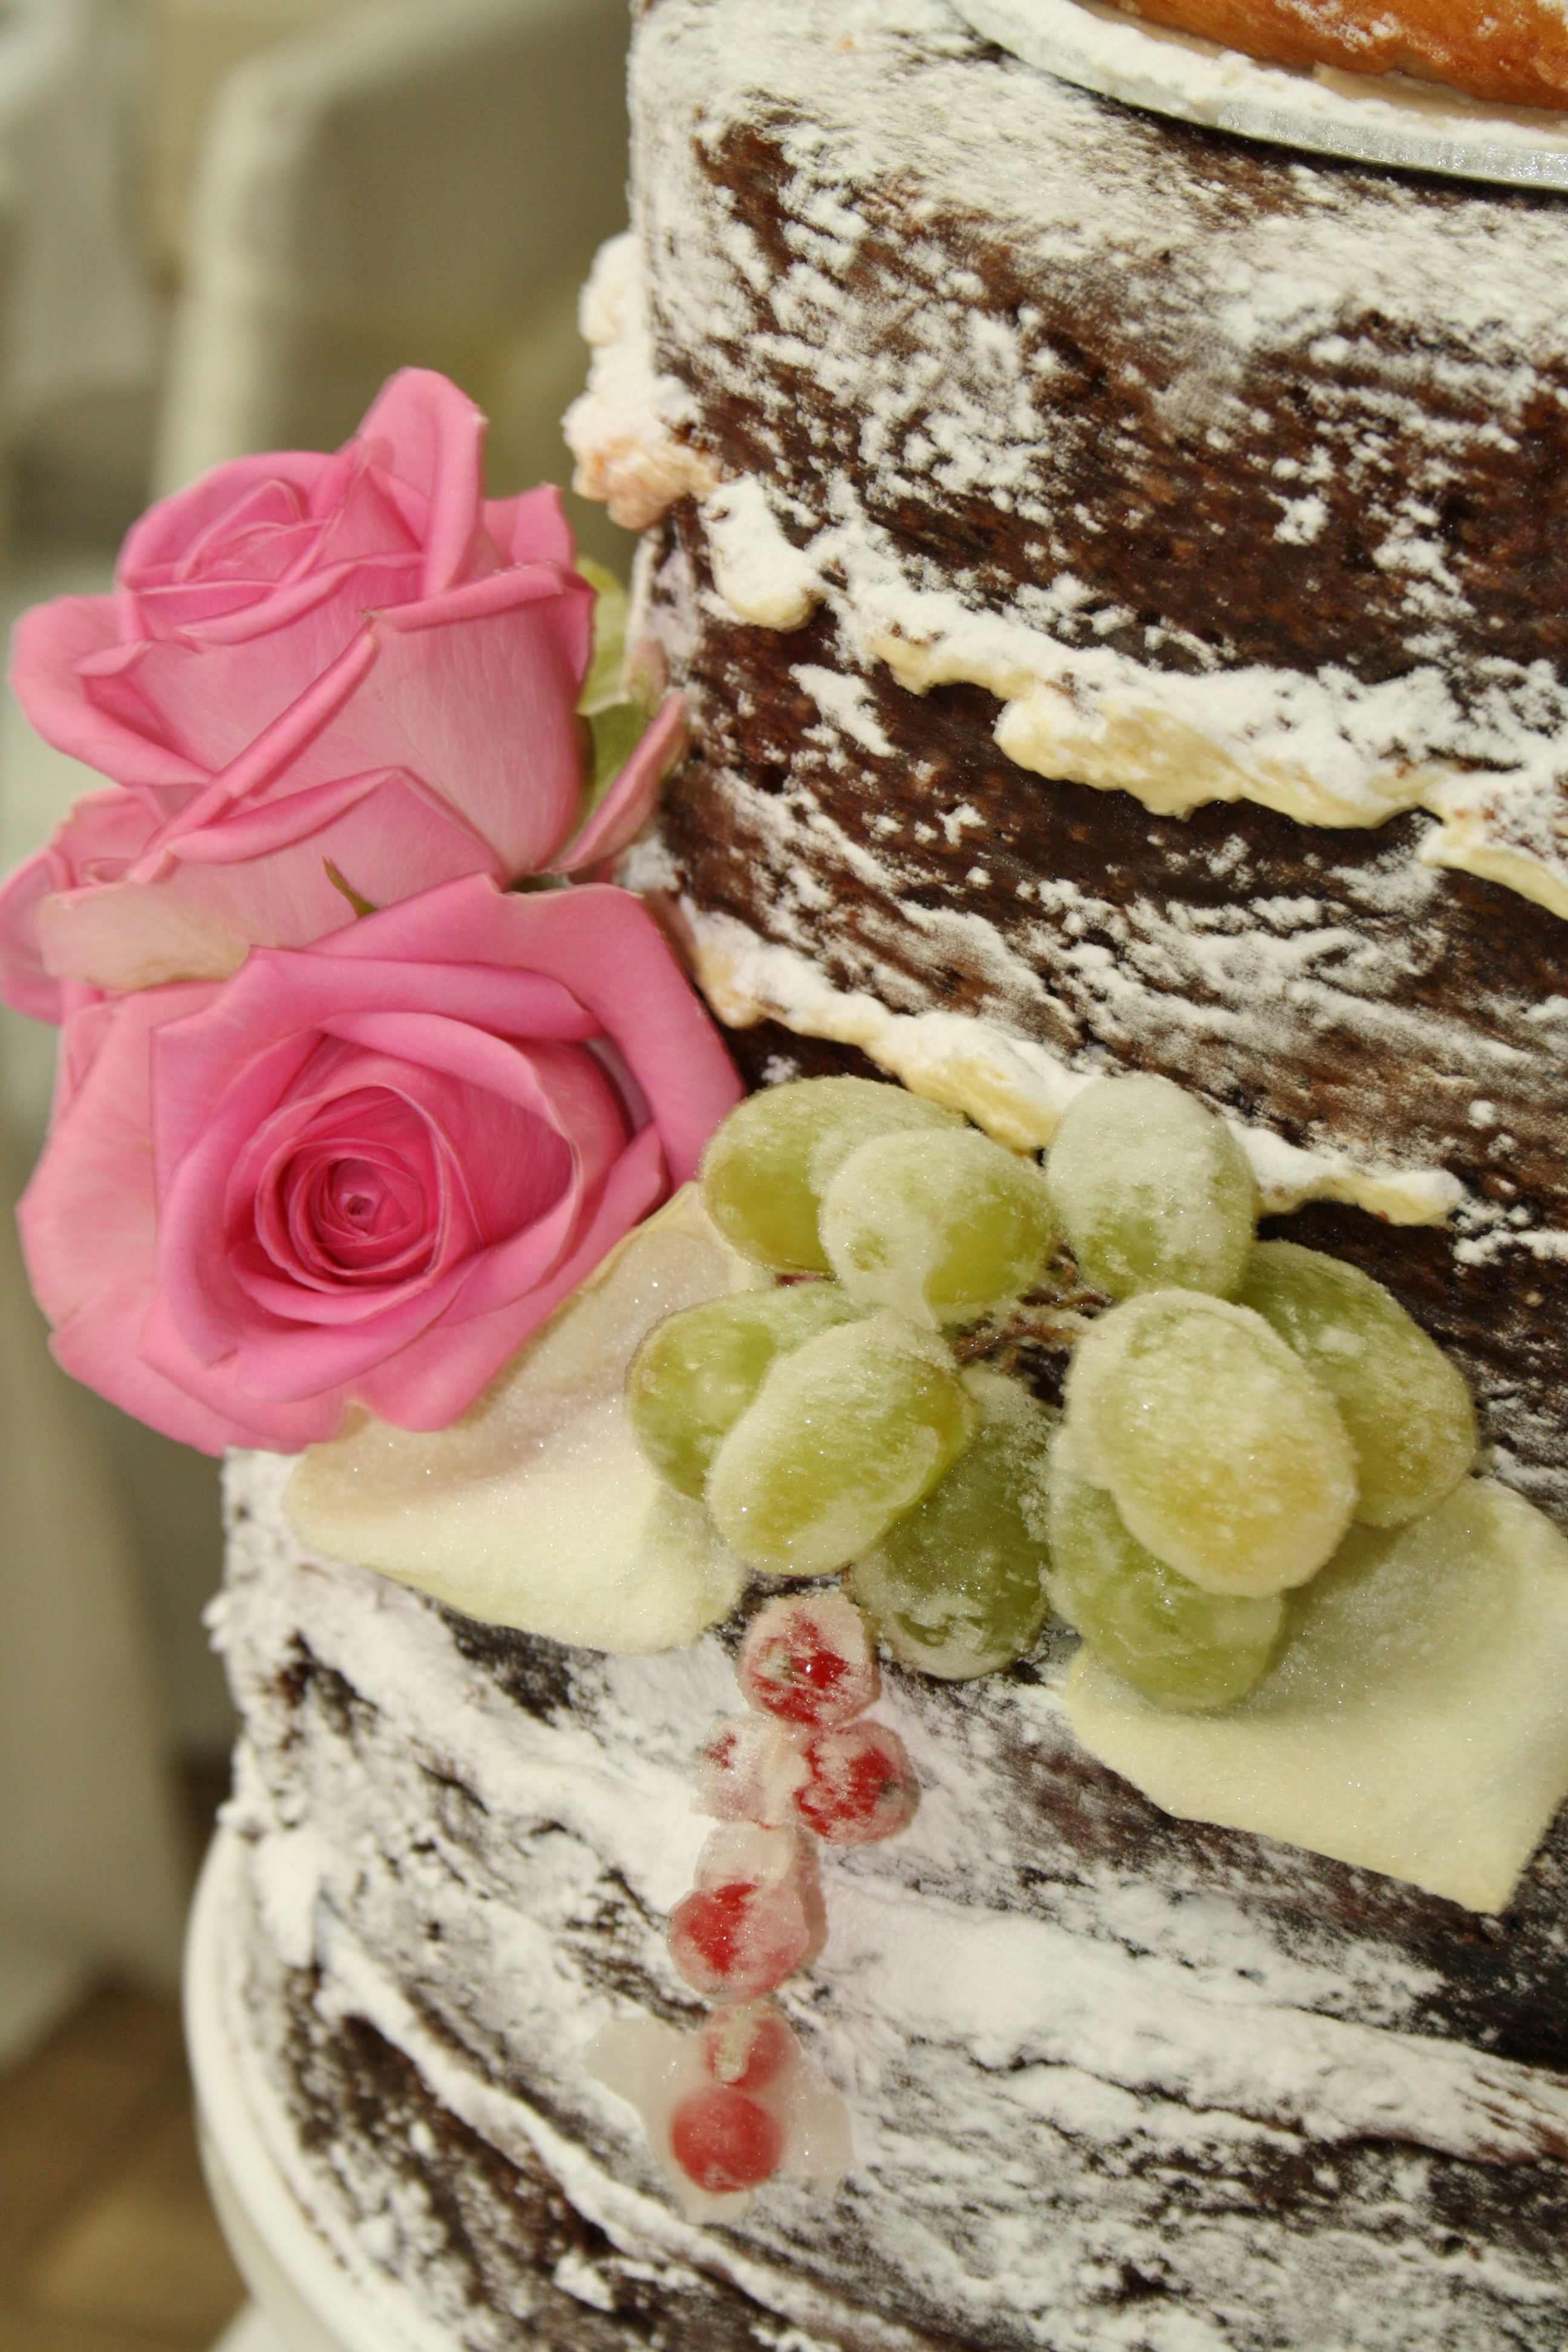 Moist Carrot Cake Decorated With Rose Petals